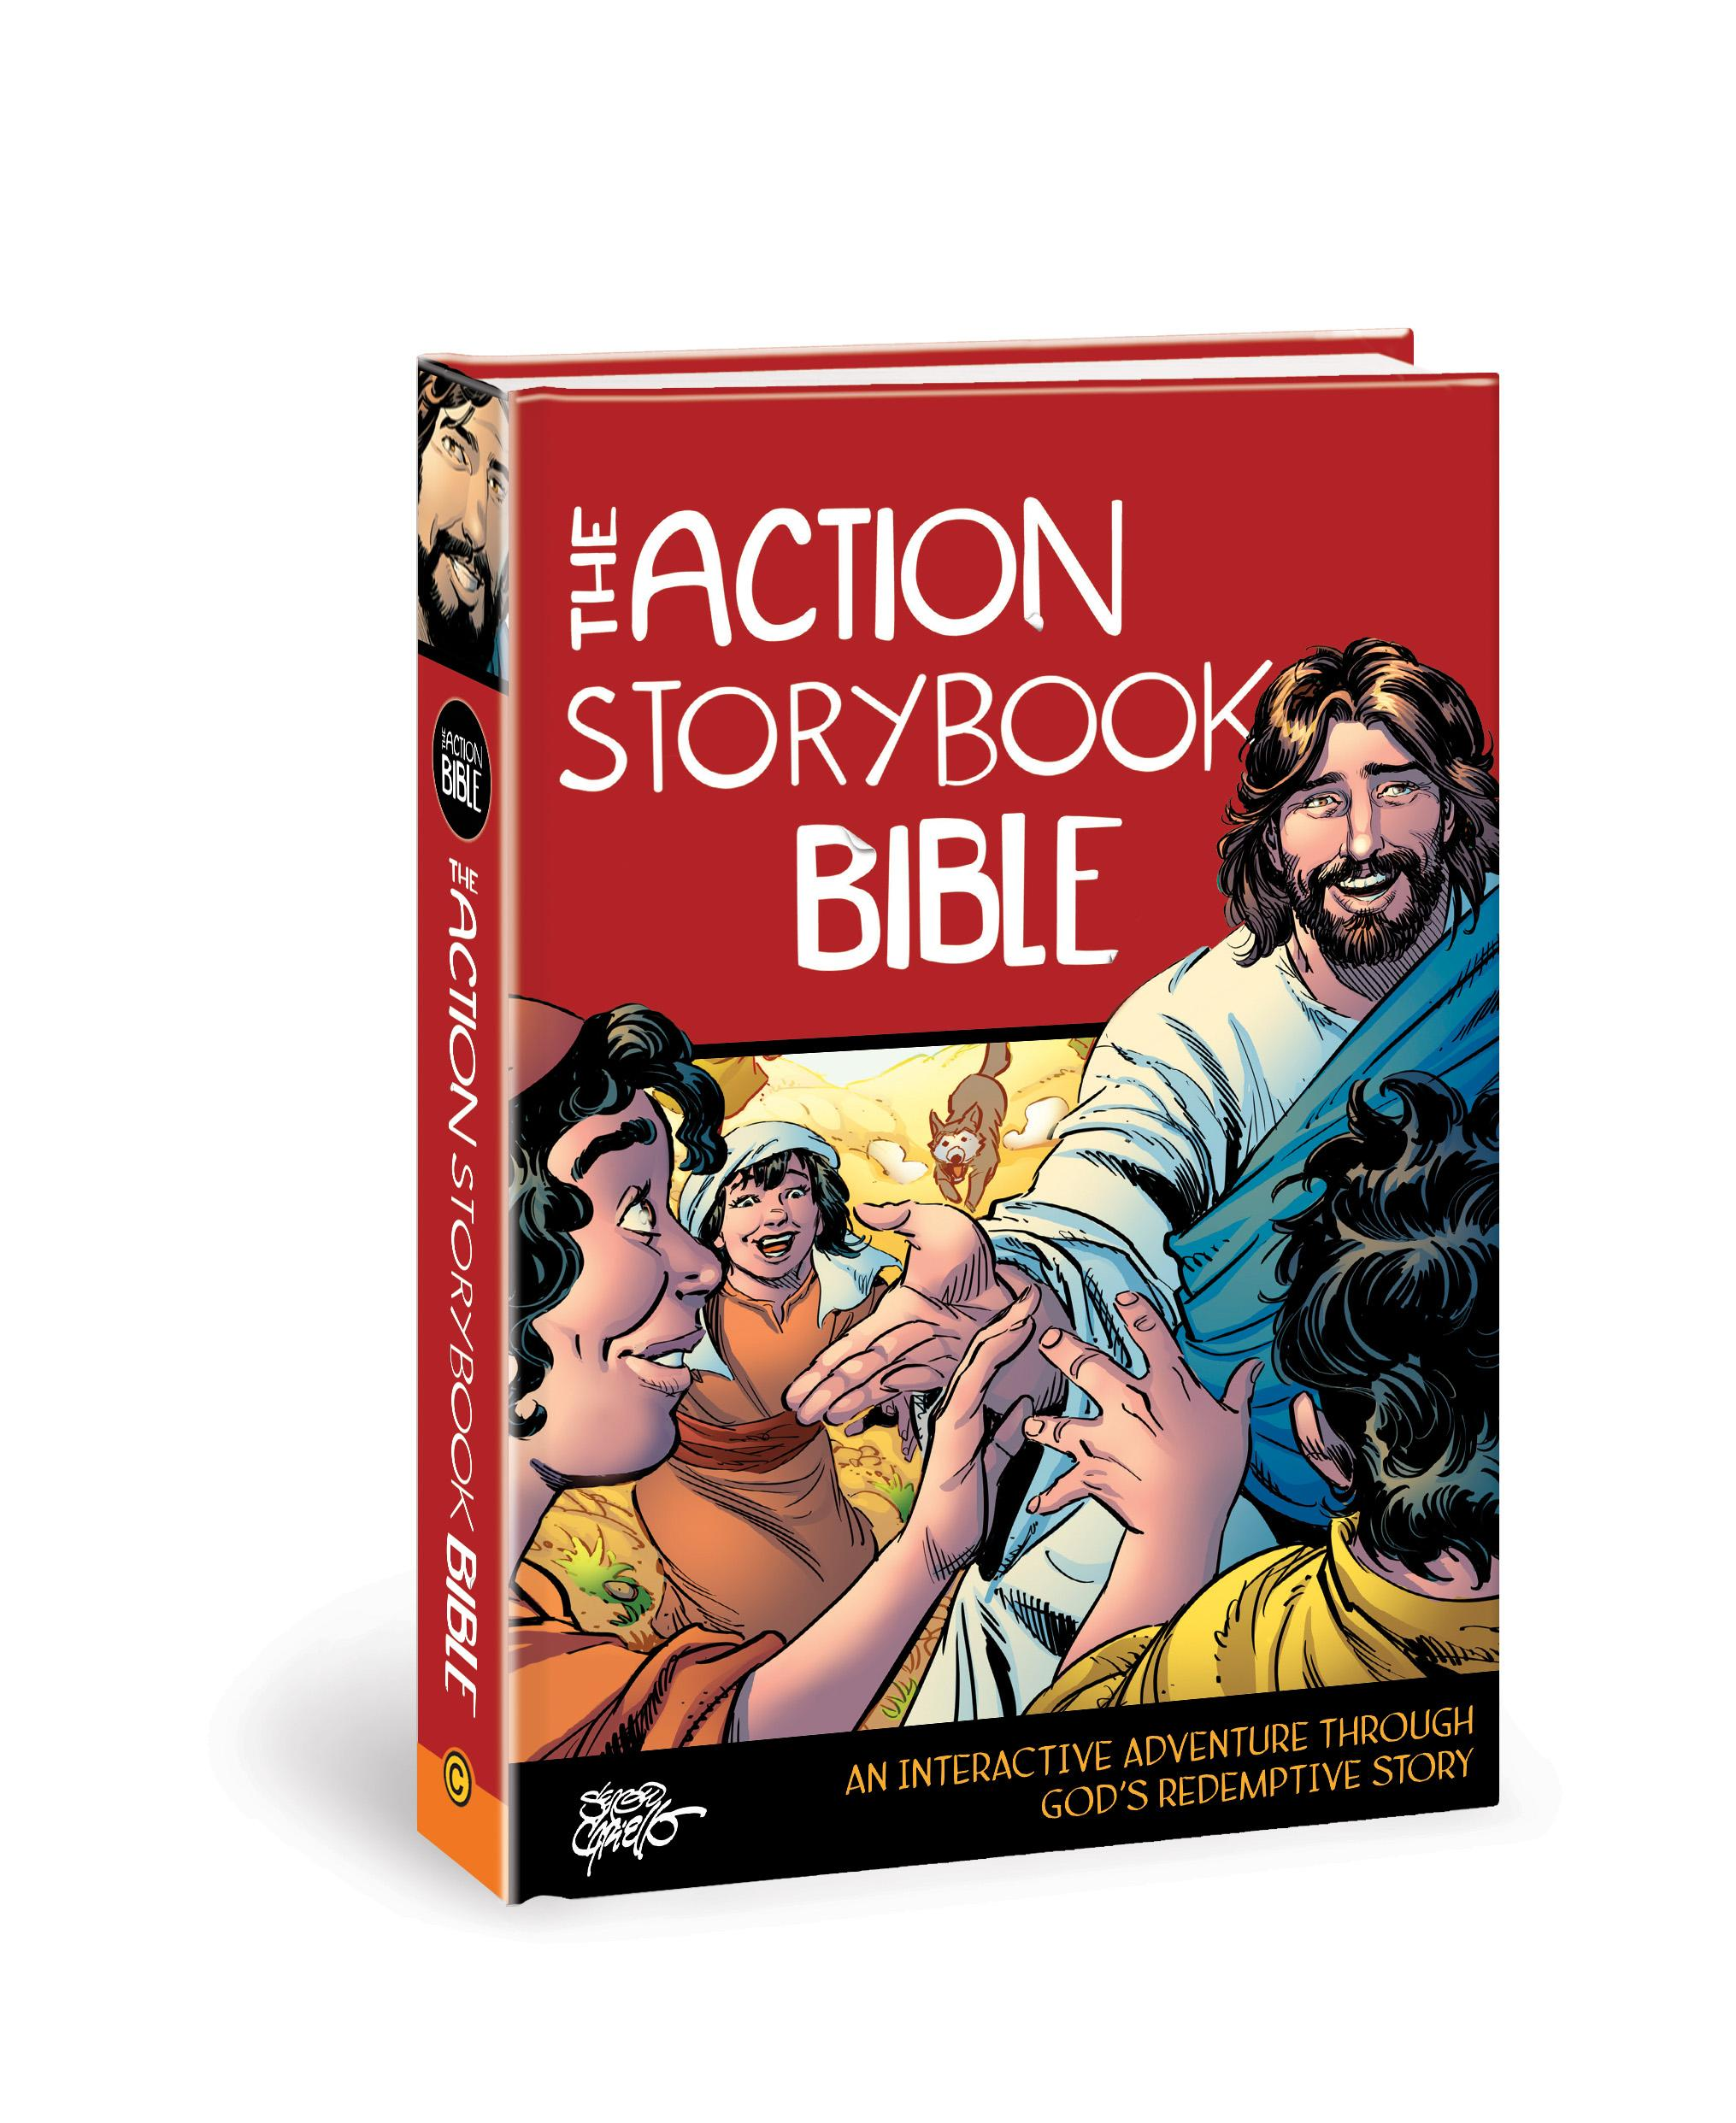 the action bible doug mauss sergio cariello 8601300483870